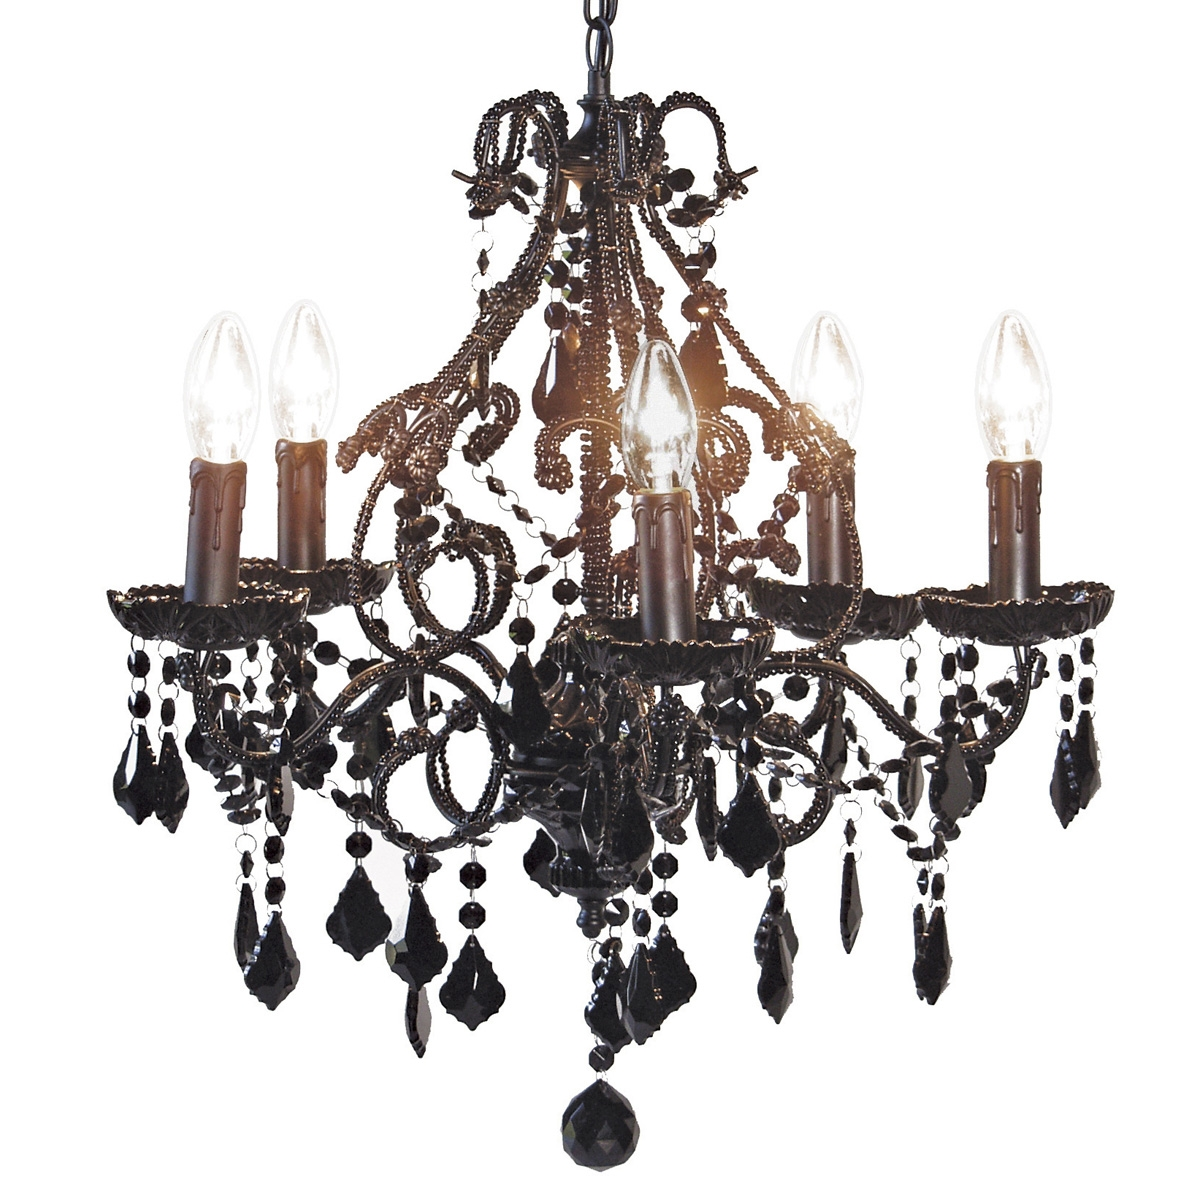 25 best collection of wall mounted chandeliers 14572 | wall mounted black chandeliers bedroom howiezine intended for wall mounted chandeliers